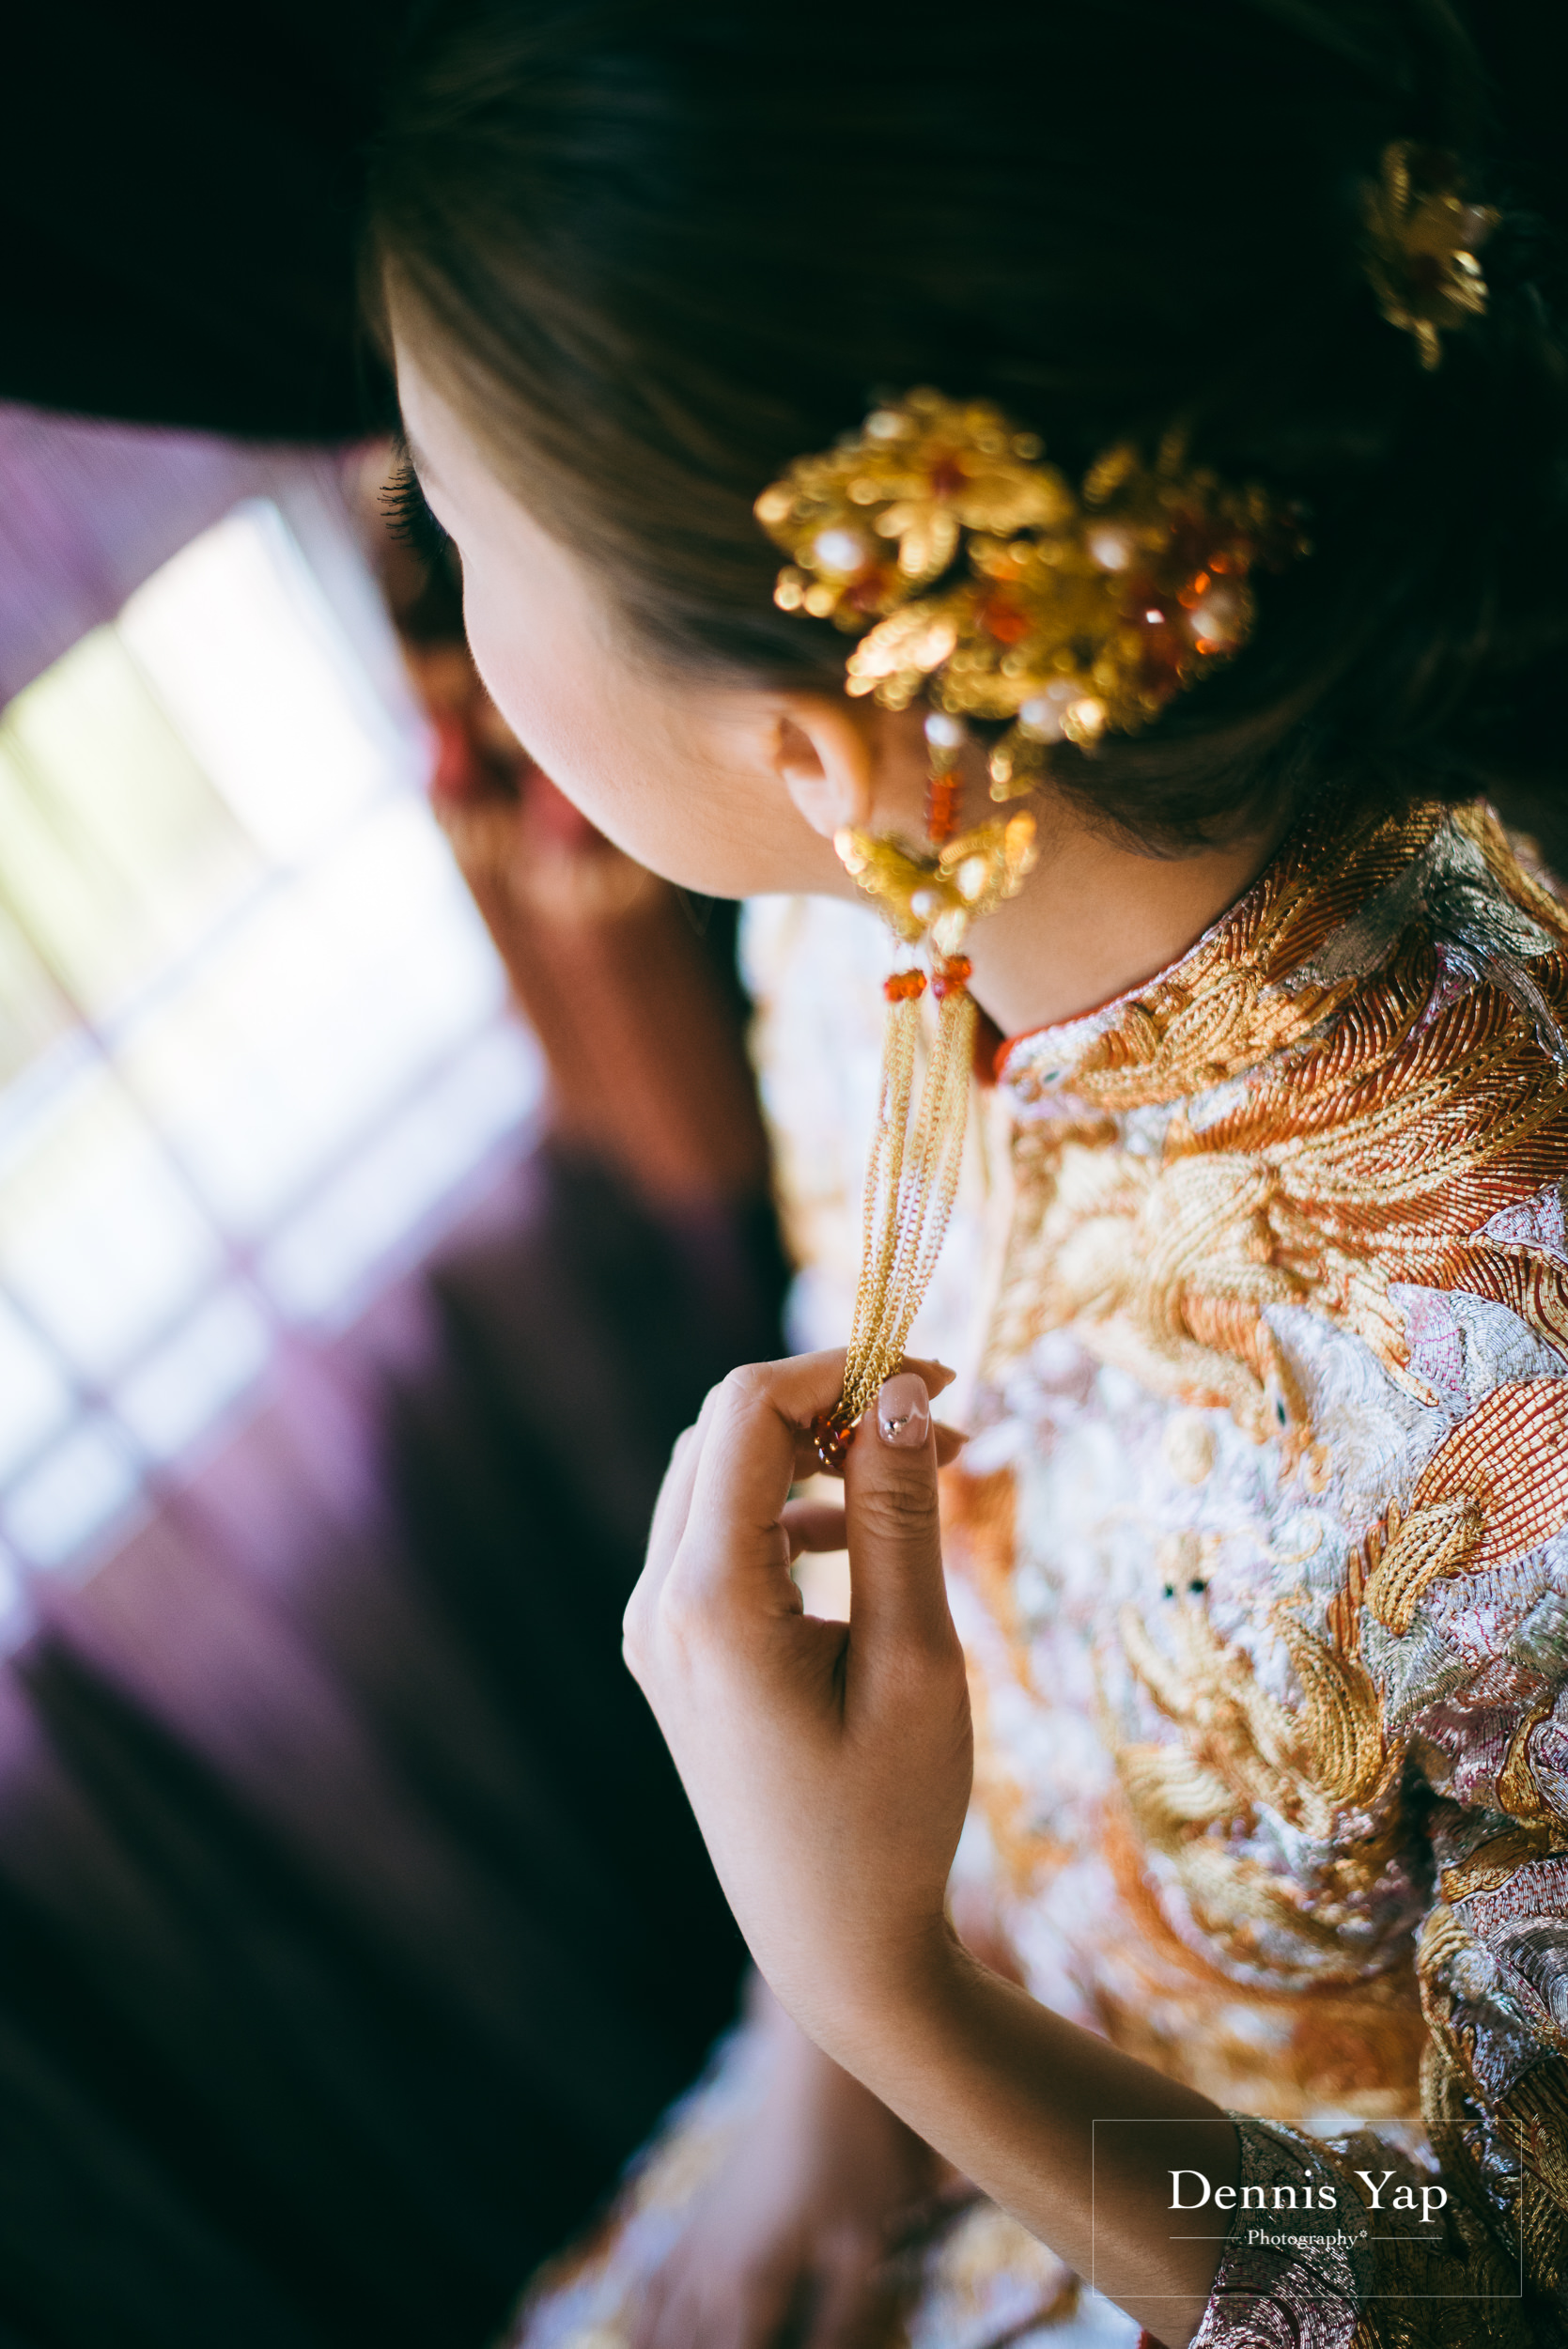 bobby fiona dennis yap photography malaysia wedding photographer chinese traditional-64.jpg